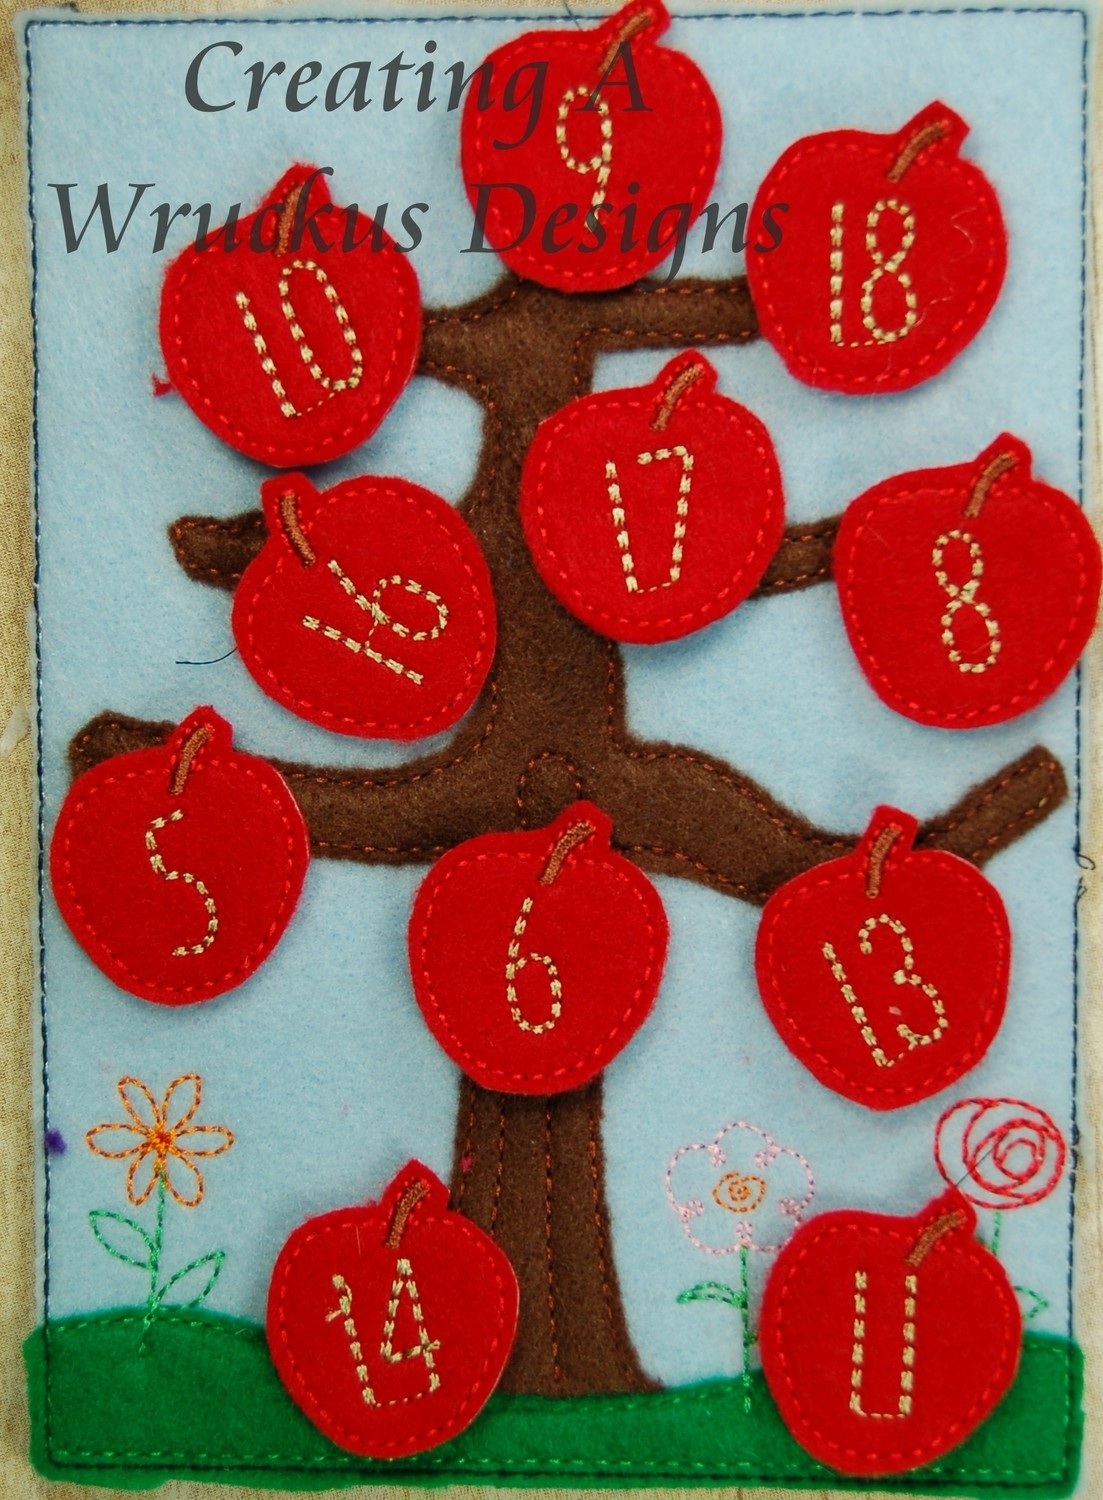 Apples in a Tree Counting